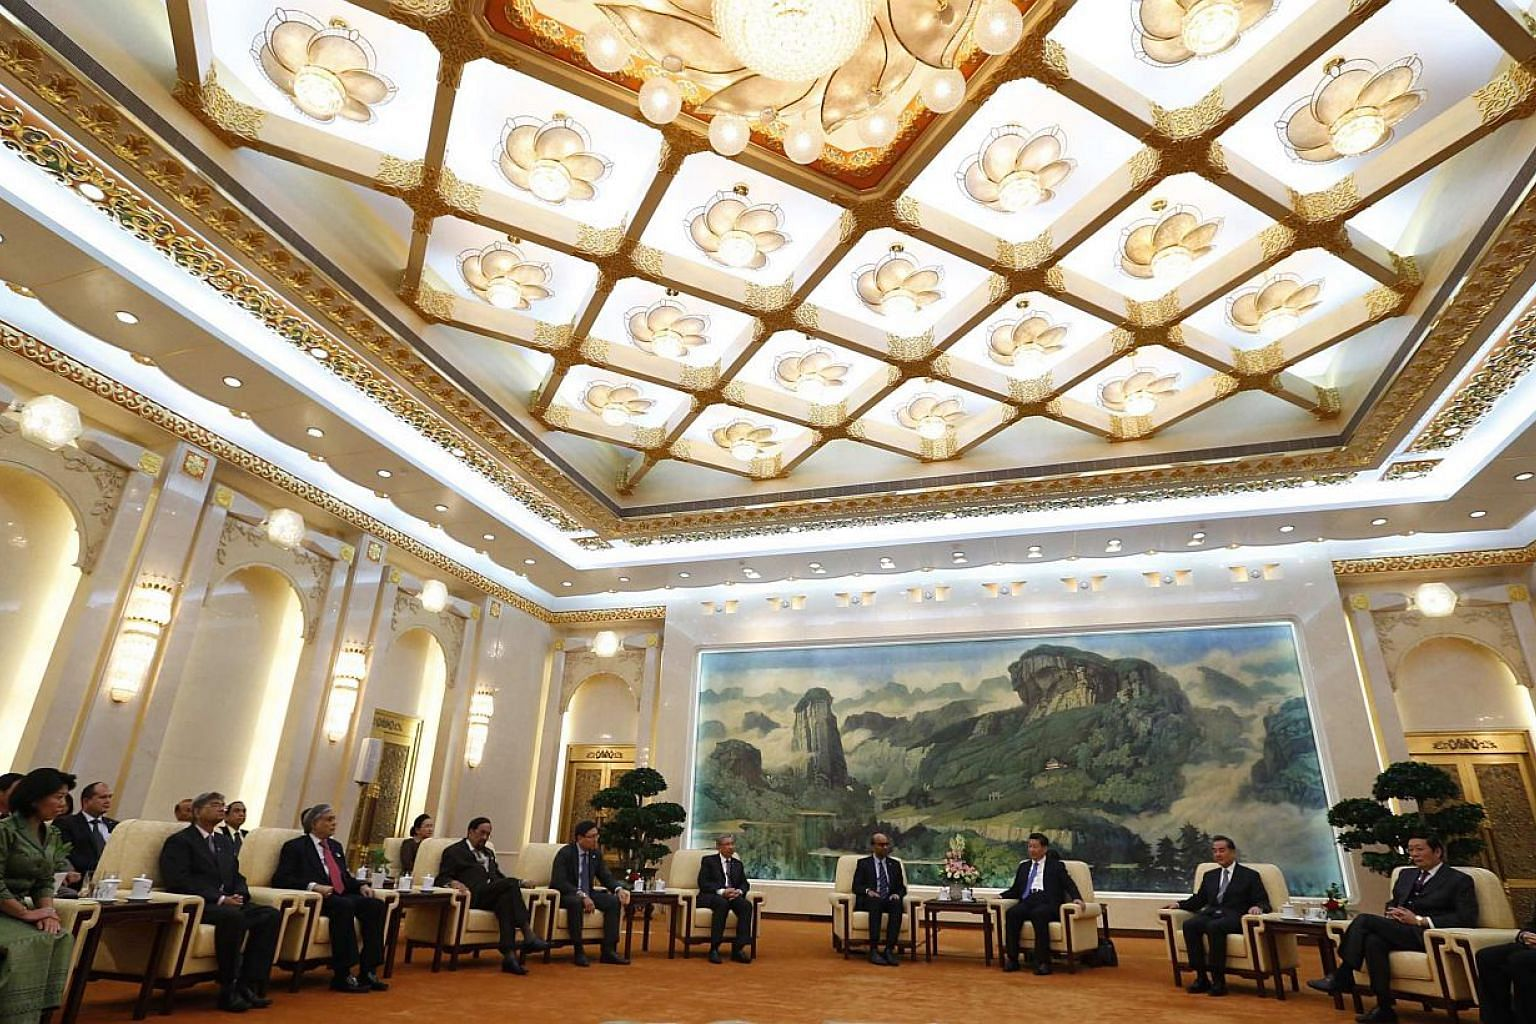 China's President Xi Jinping (fourth from right) meeting with the guests at the Asian Infrastructure Investment Bank launch ceremony at the Great Hall of the People in Beijing in Oct 24, 2014. - PHOTO: REUTERS